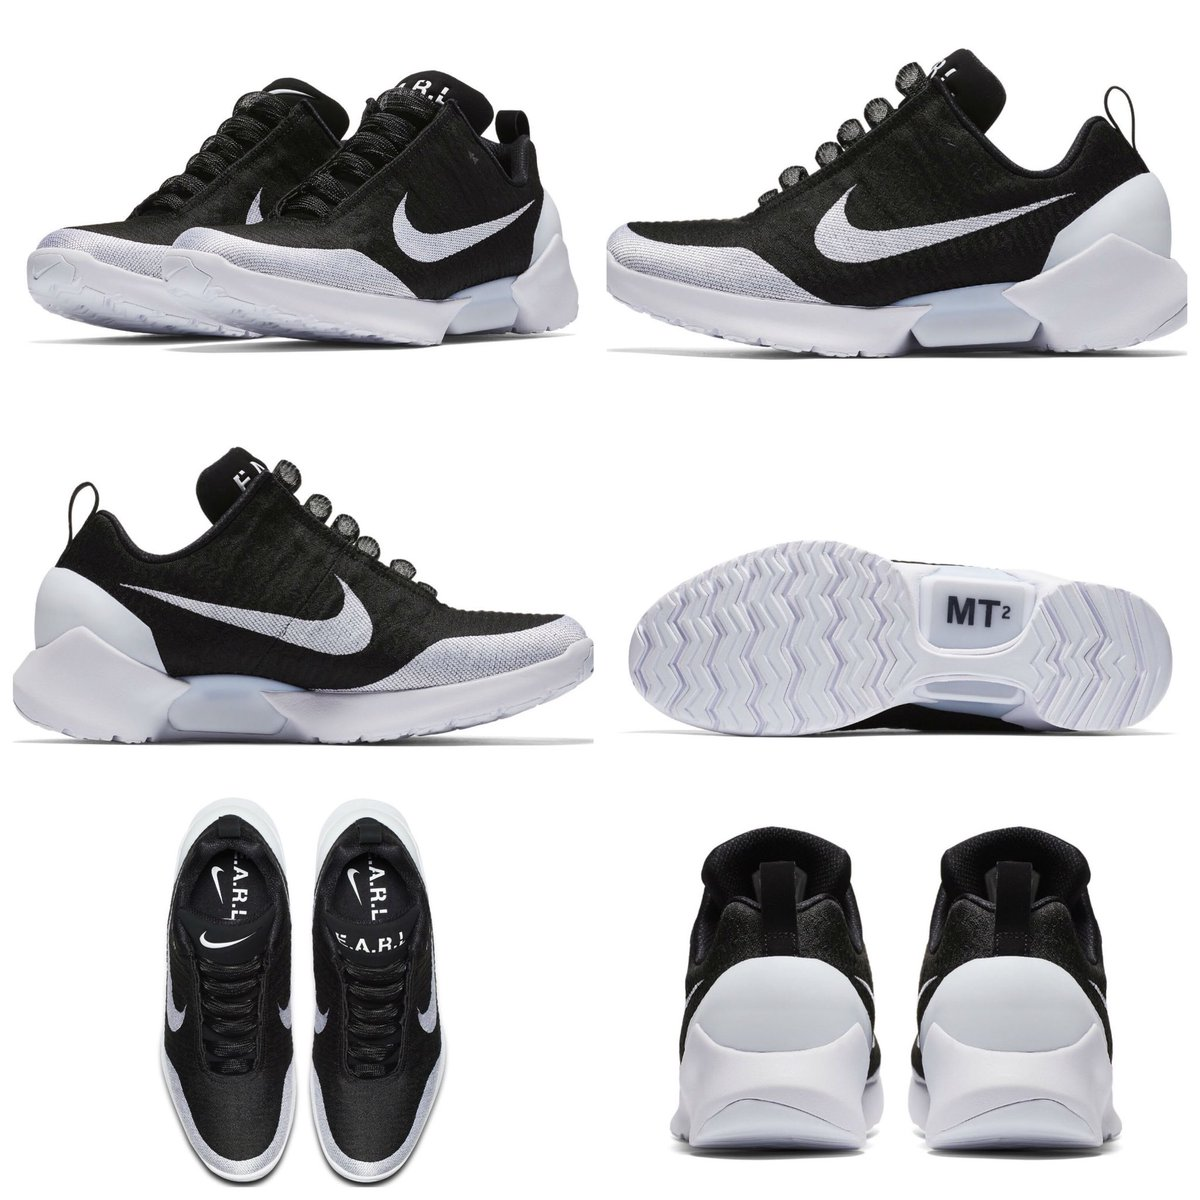 0e732030950d4 Official images of the Nike HyperAdapt 1.0 set to drop next month Black/ White AH9389-011 $720 #snkr_twitrpic.twitter.com/OxlwKleilW